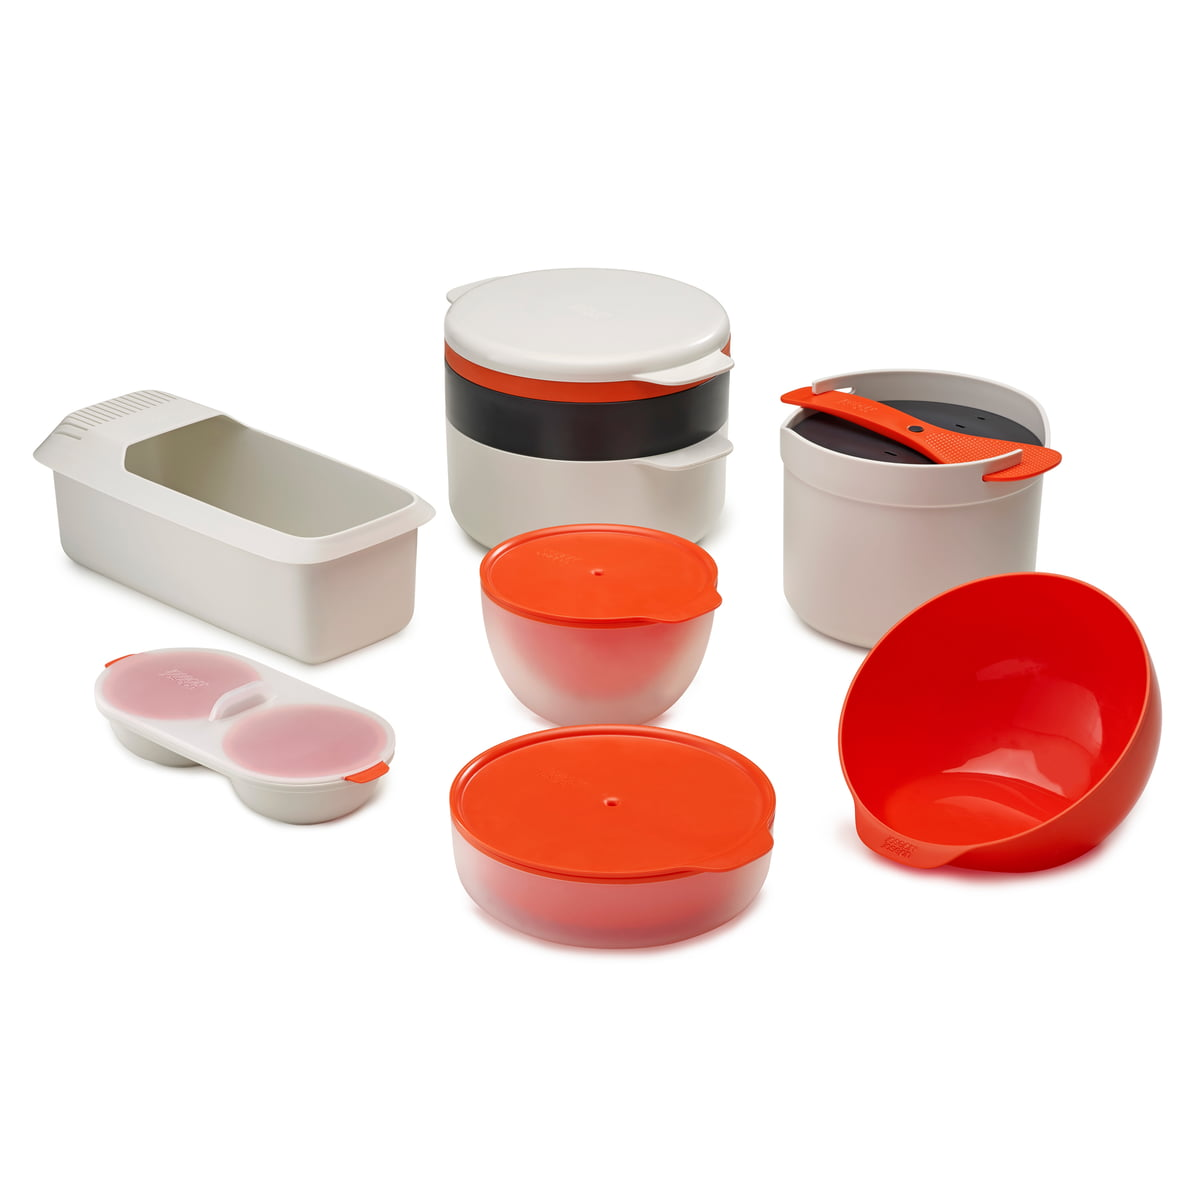 microwave plate by joseph joseph in the shop. Black Bedroom Furniture Sets. Home Design Ideas